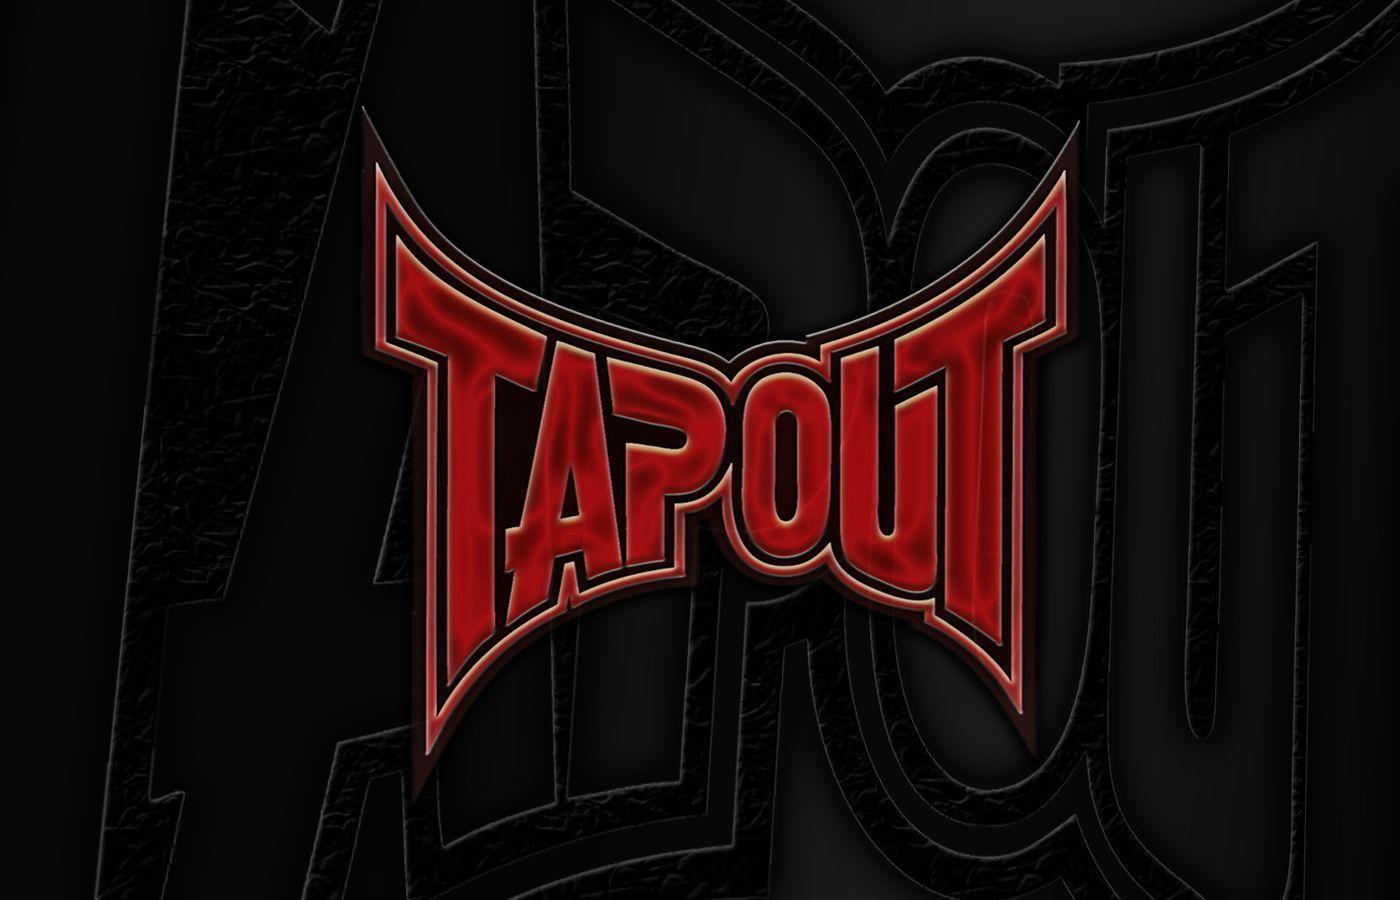 tapout wallpaper for facebook - photo #5